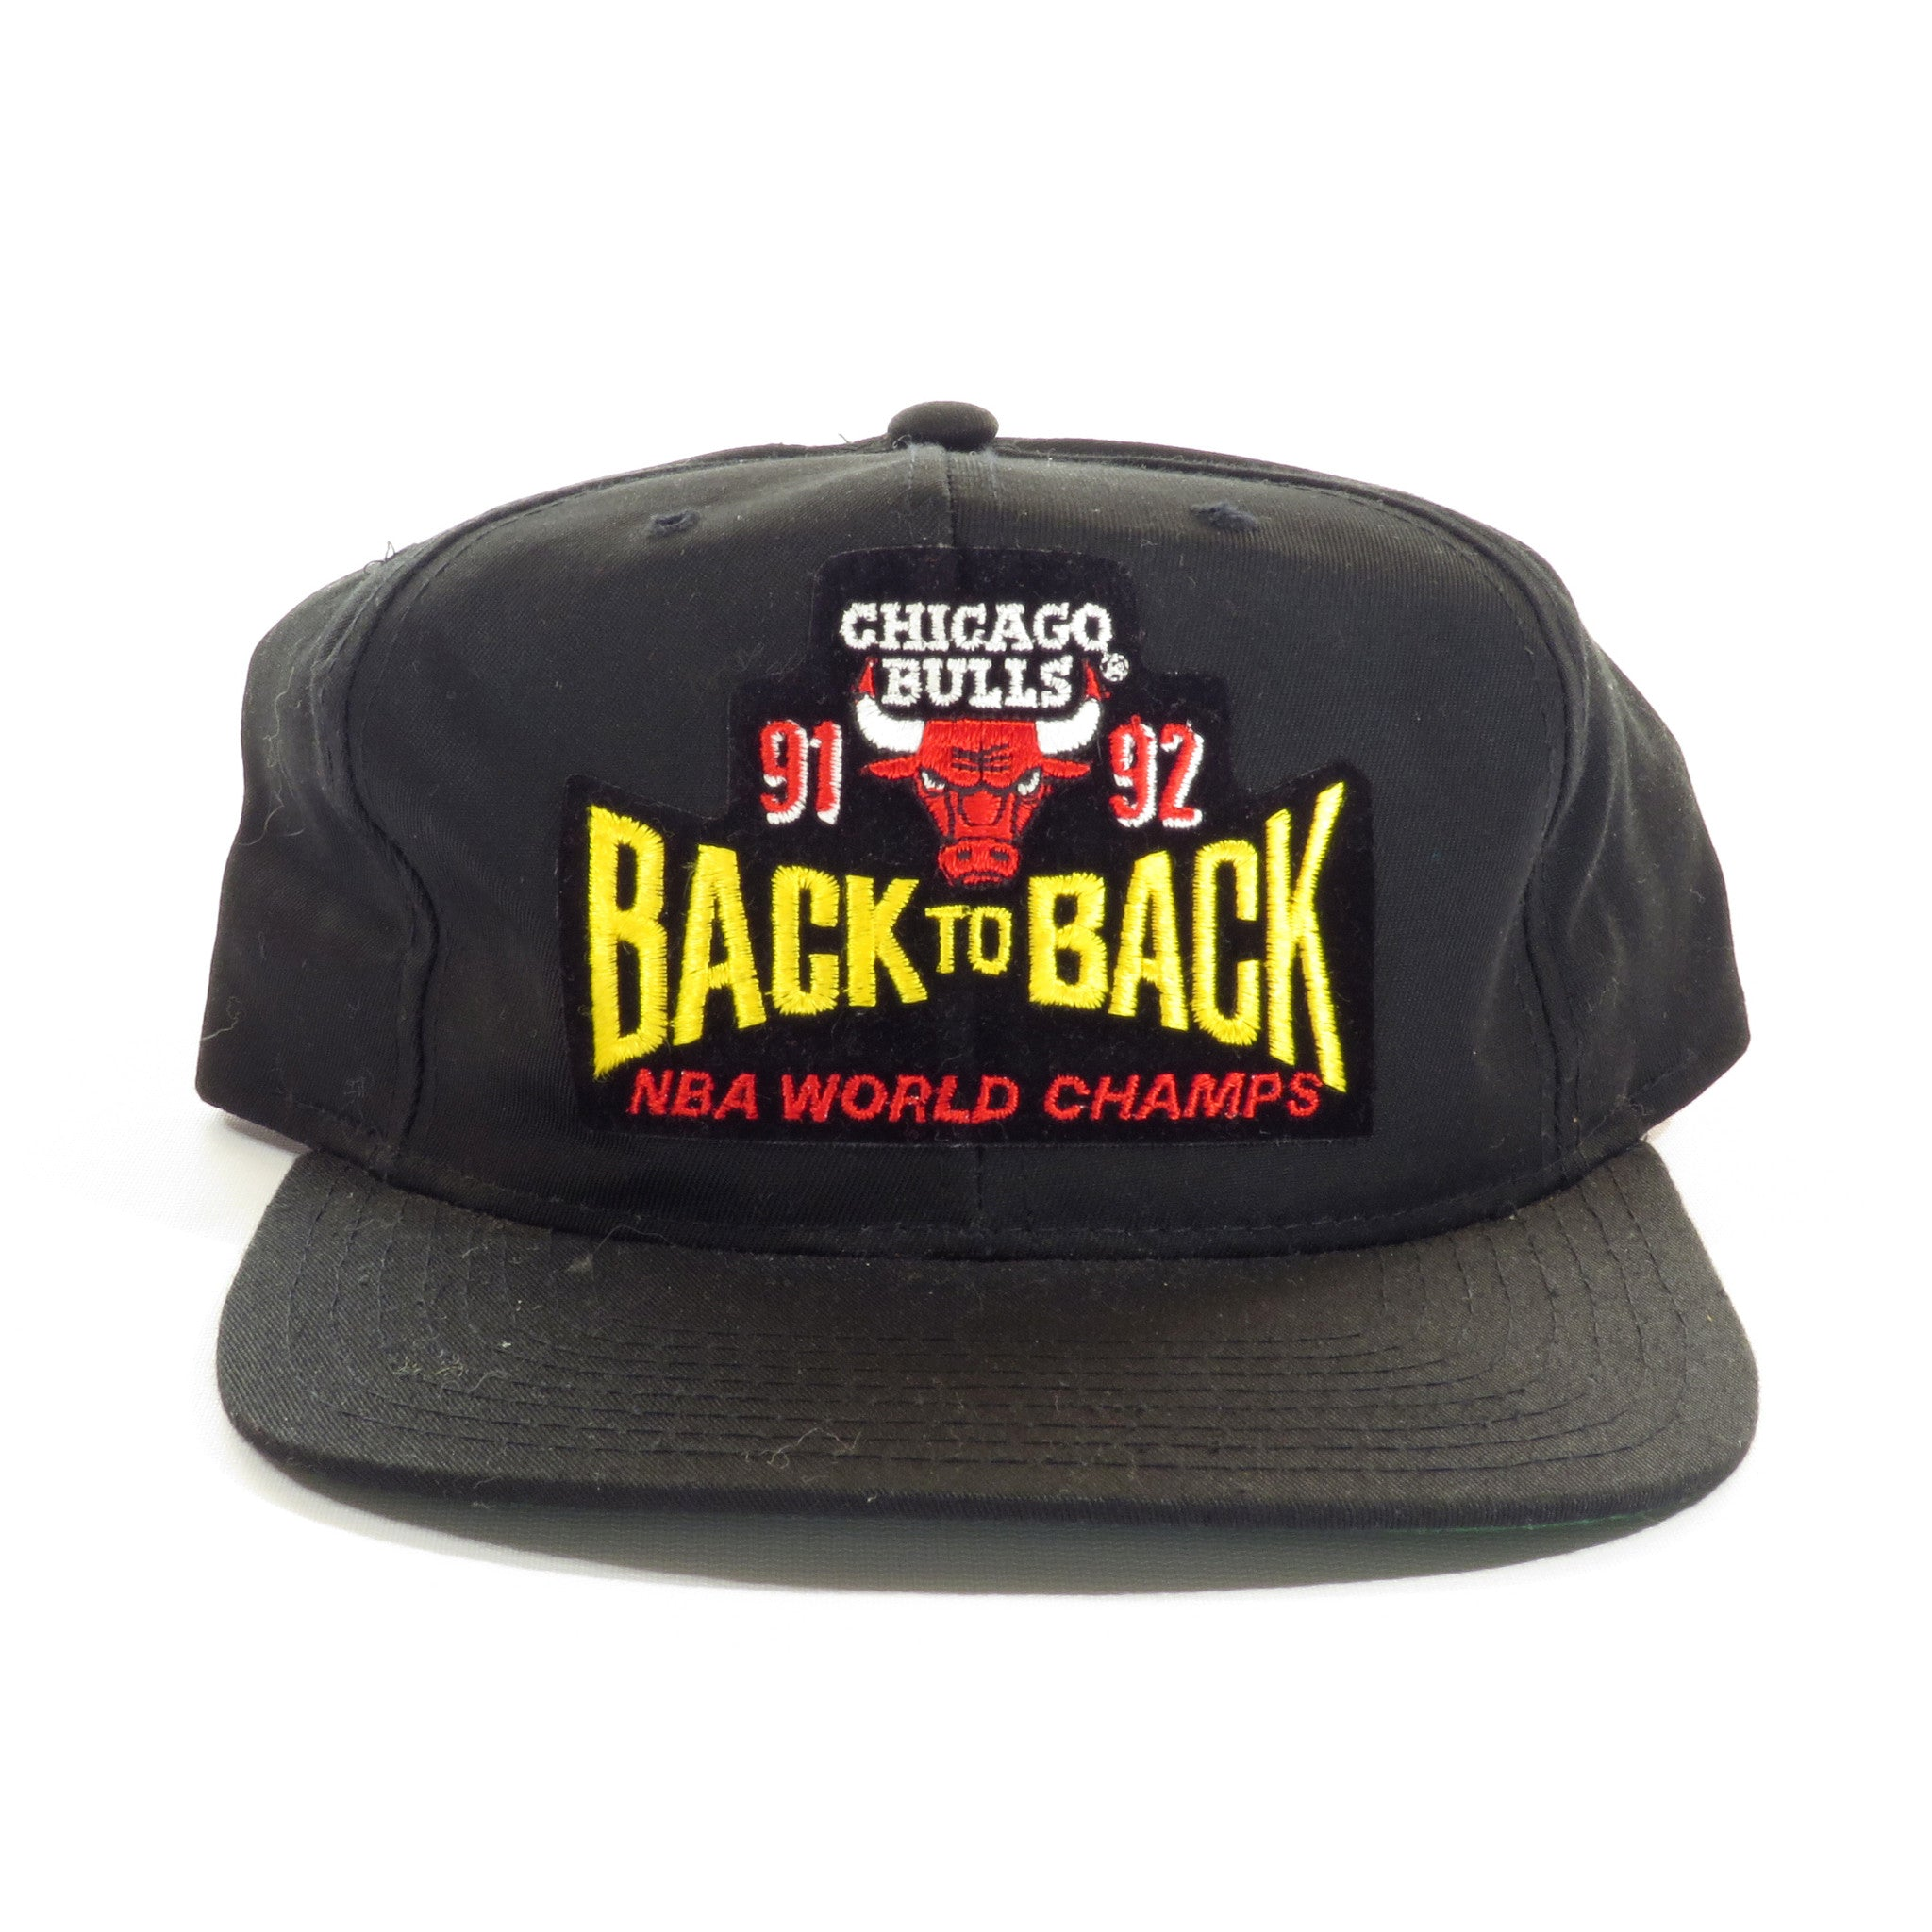 7fd2ab12b3c05 Chicago Bulls 91 92 Back to Back NBA World Champions Snapback Hat ...